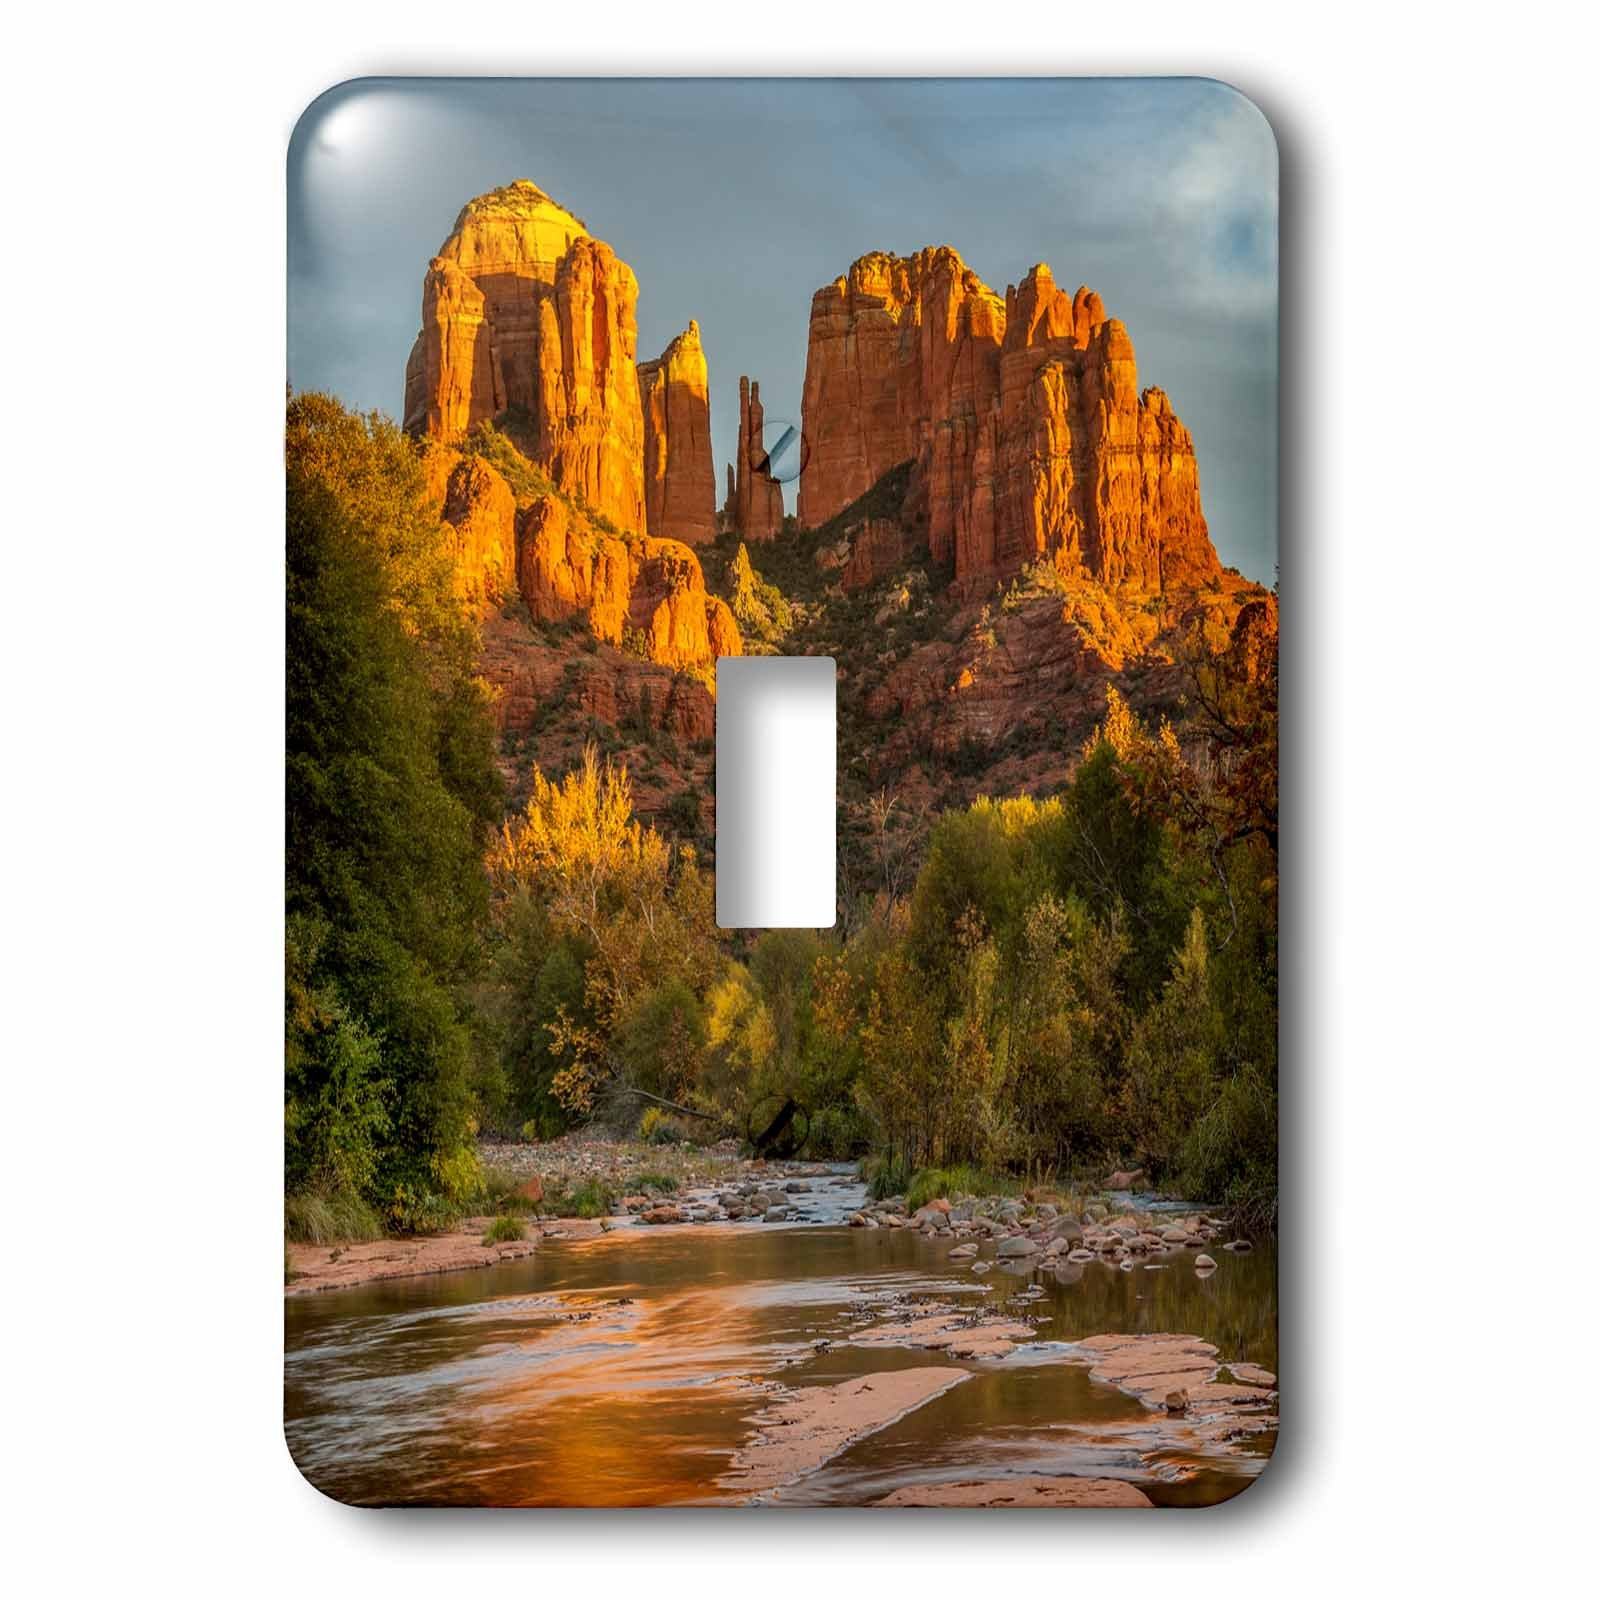 3dRose Danita Delimont - Deserts - USA, Arizona, Sedona, Cathedral Rock - Light Switch Covers - single toggle switch (lsp_278451_1) by 3dRose